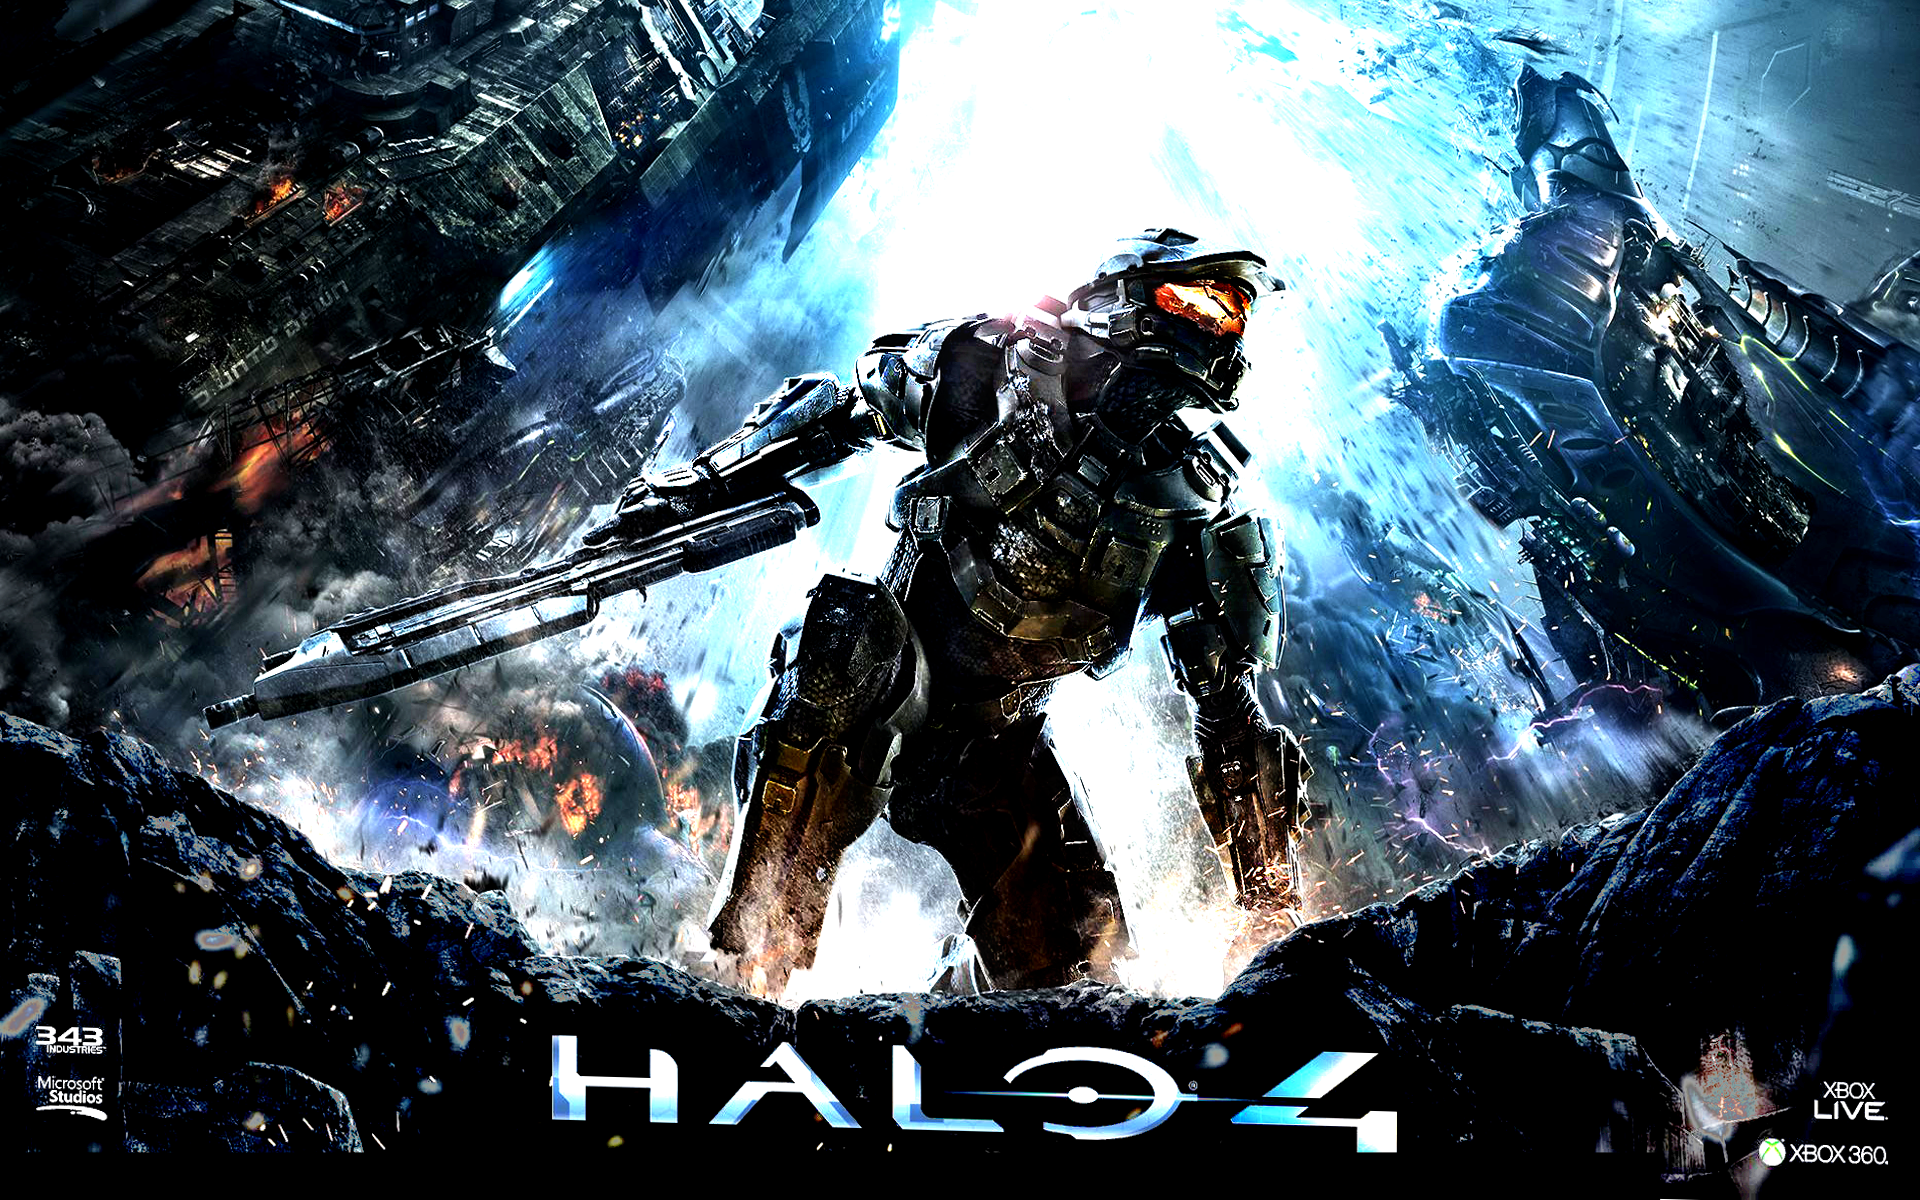 wallpaper free game halo - photo #19